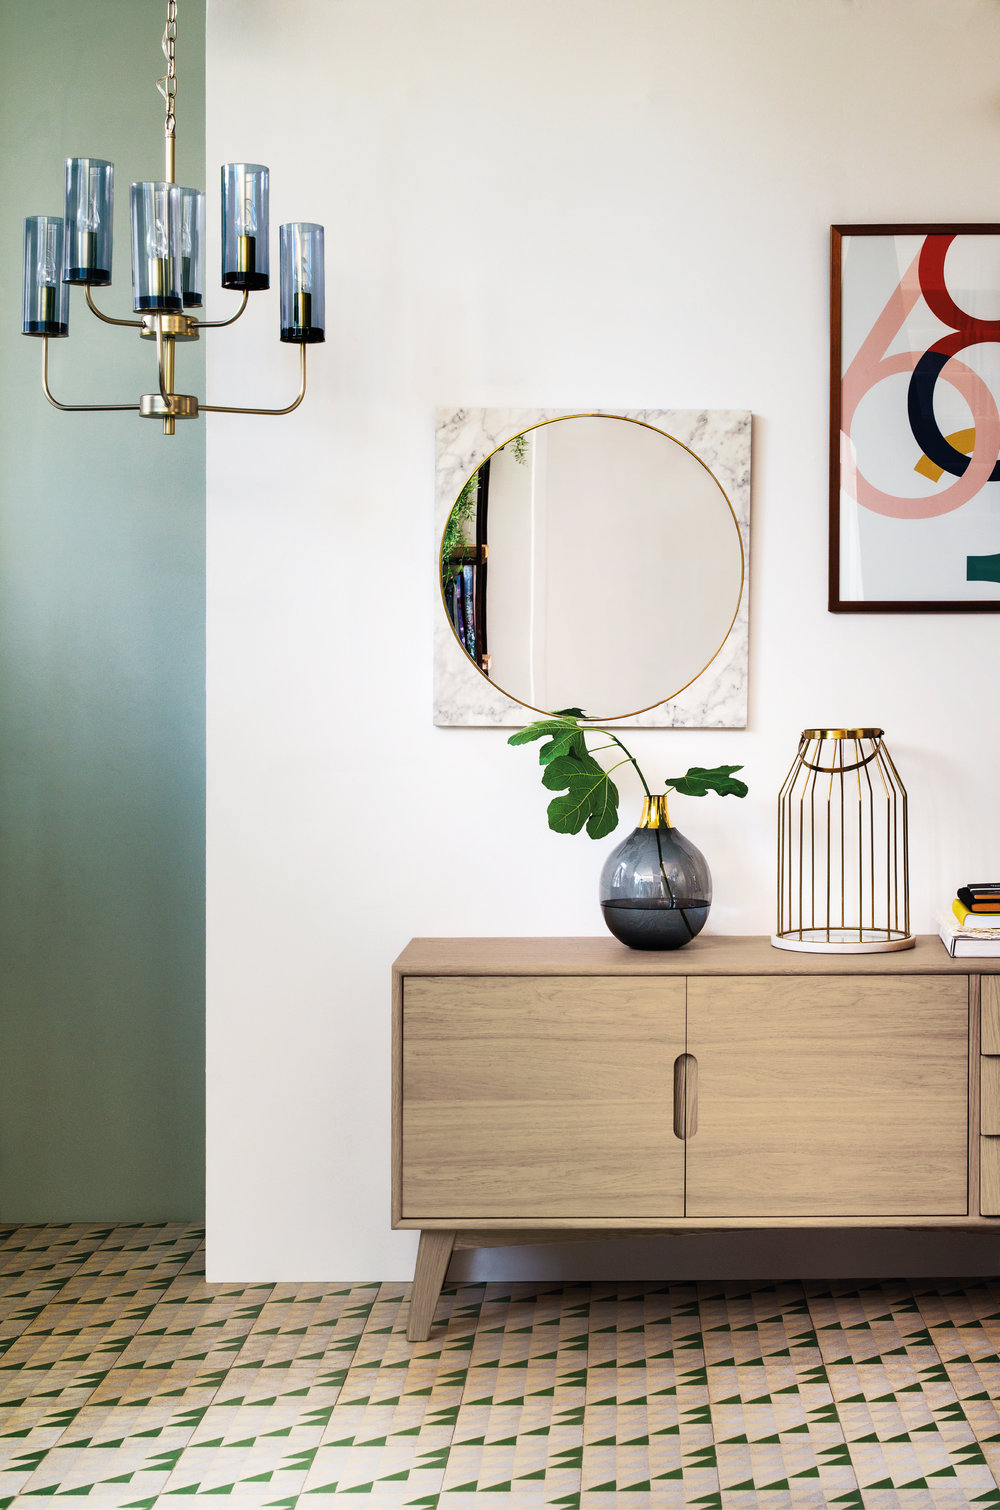 I Love Conran\'s 2017 Collection for M&S • The Beat That My Heart Skipped